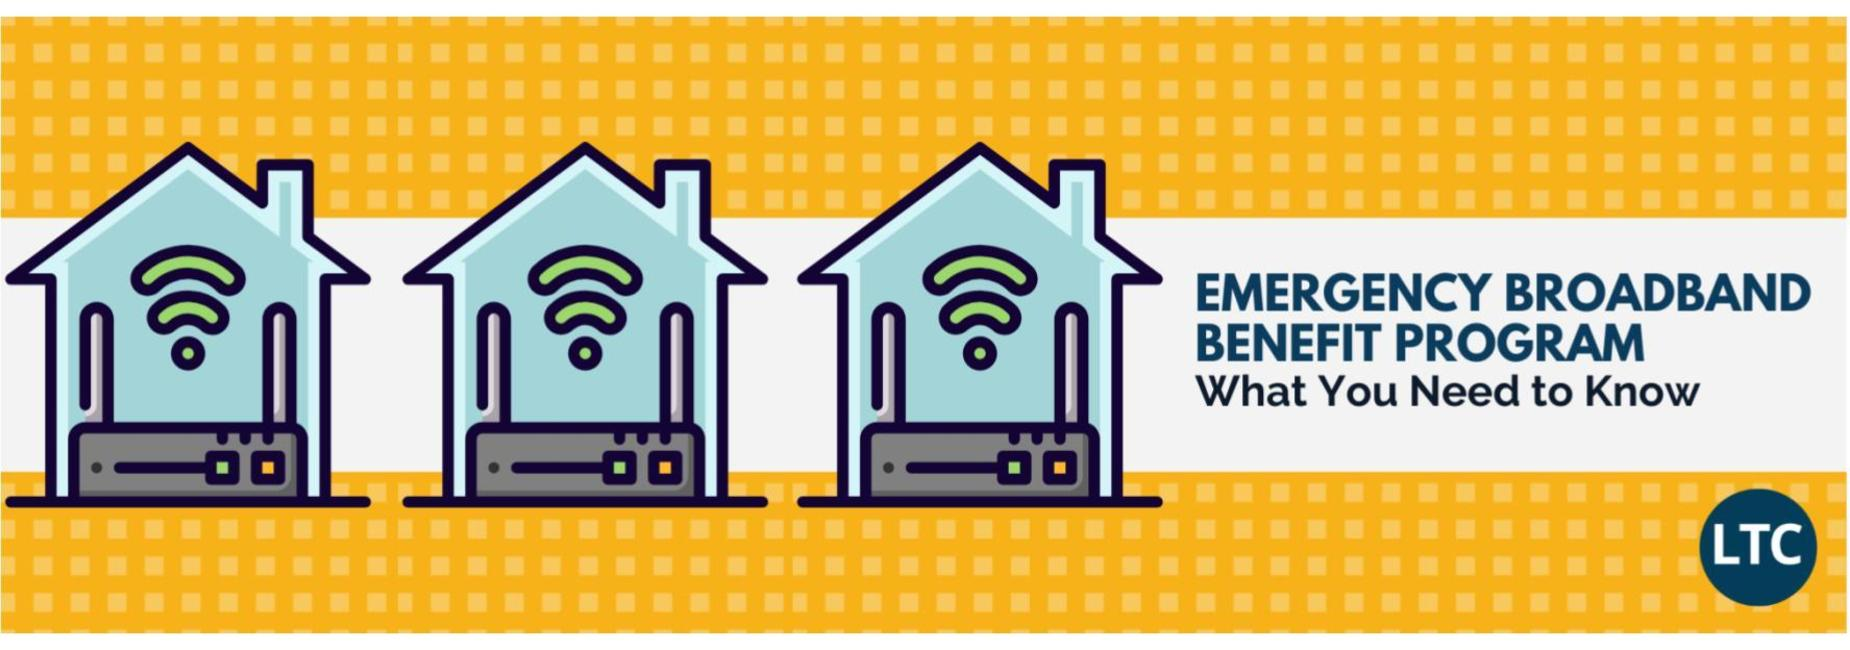 Emergency Broadband Benefit Program: What you Need to Know